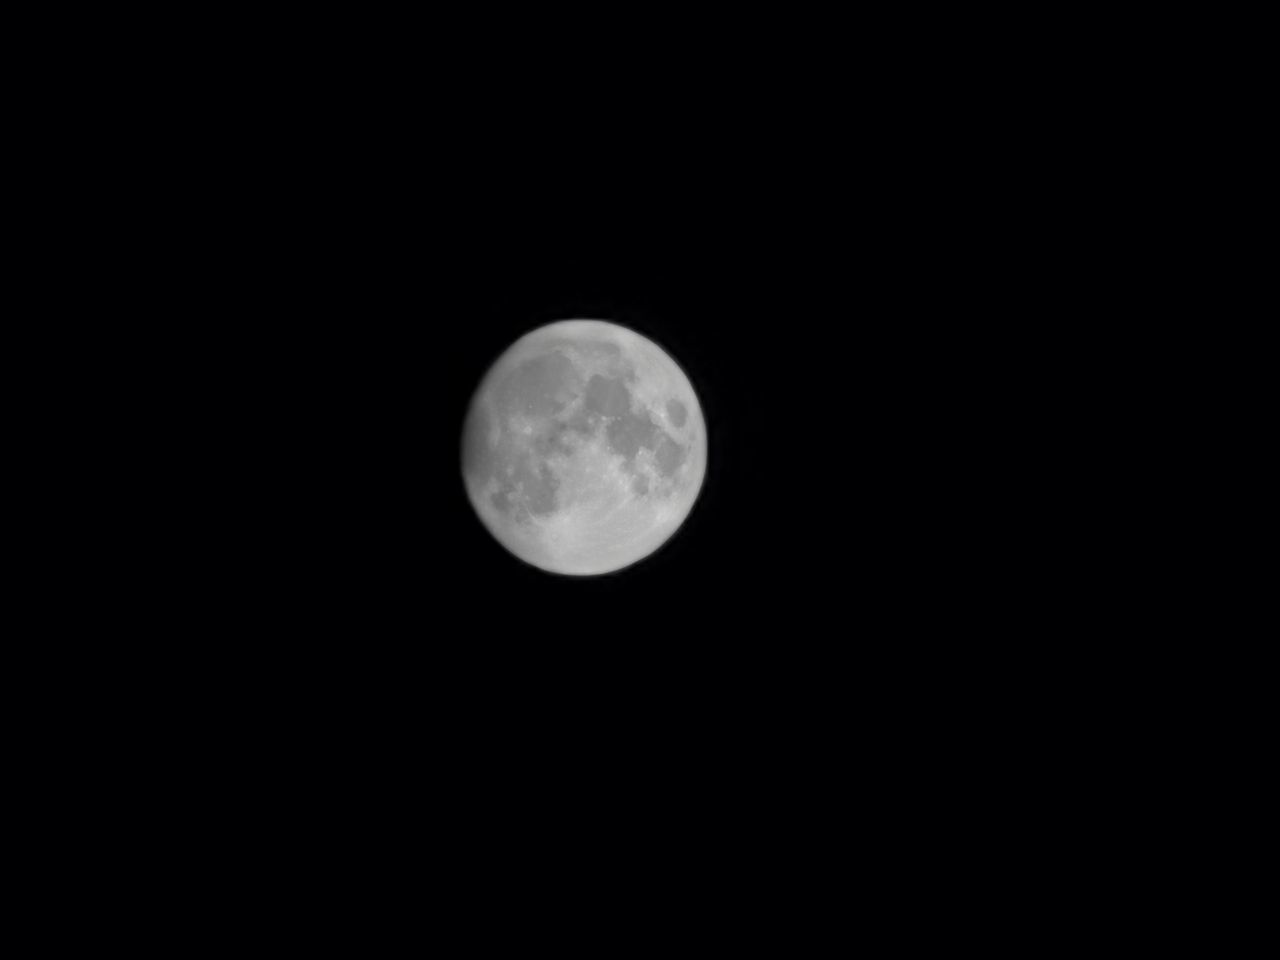 space, moon, astronomy, sky, night, beauty in nature, full moon, planetary moon, scenics - nature, circle, shape, geometric shape, nature, tranquility, copy space, no people, tranquil scene, moon surface, low angle view, idyllic, dark, outdoors, moonlight, astrology